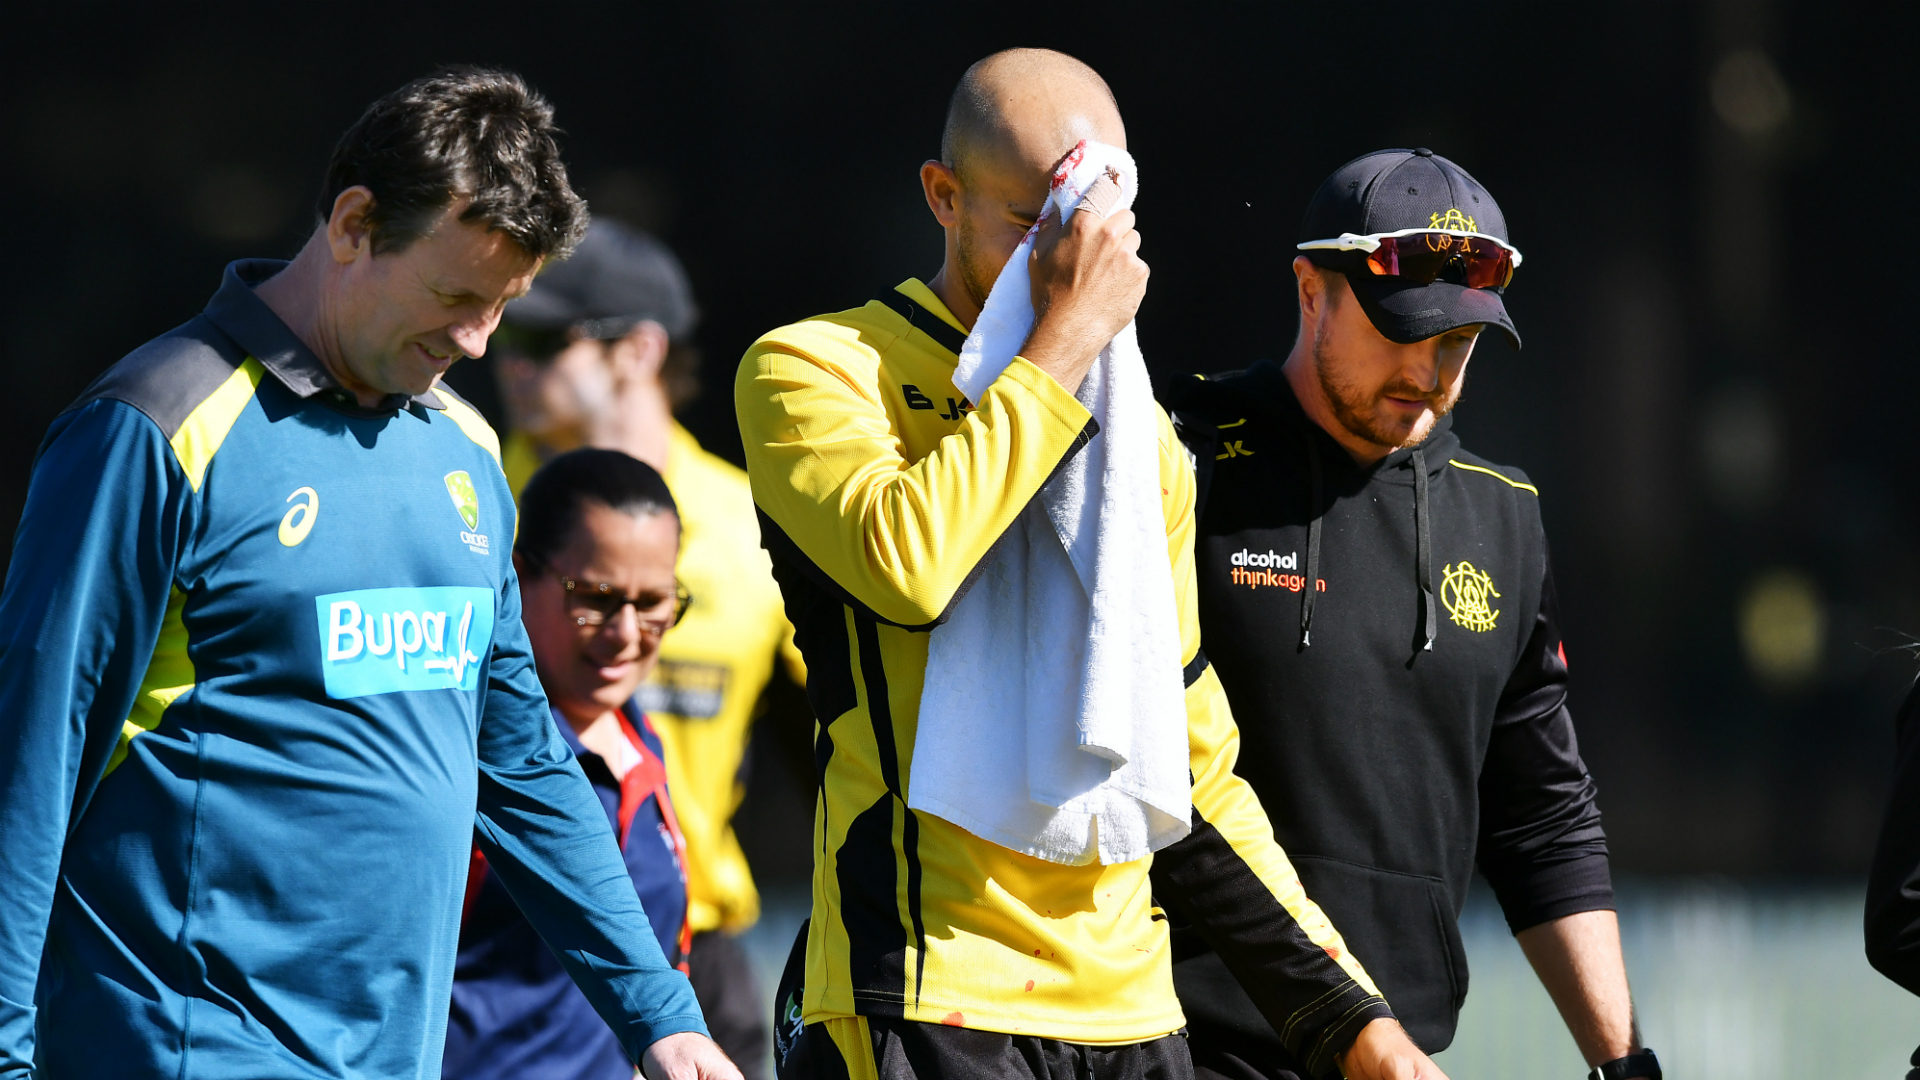 Oh, brother! – Australia international Agar hurt after dropping sibling